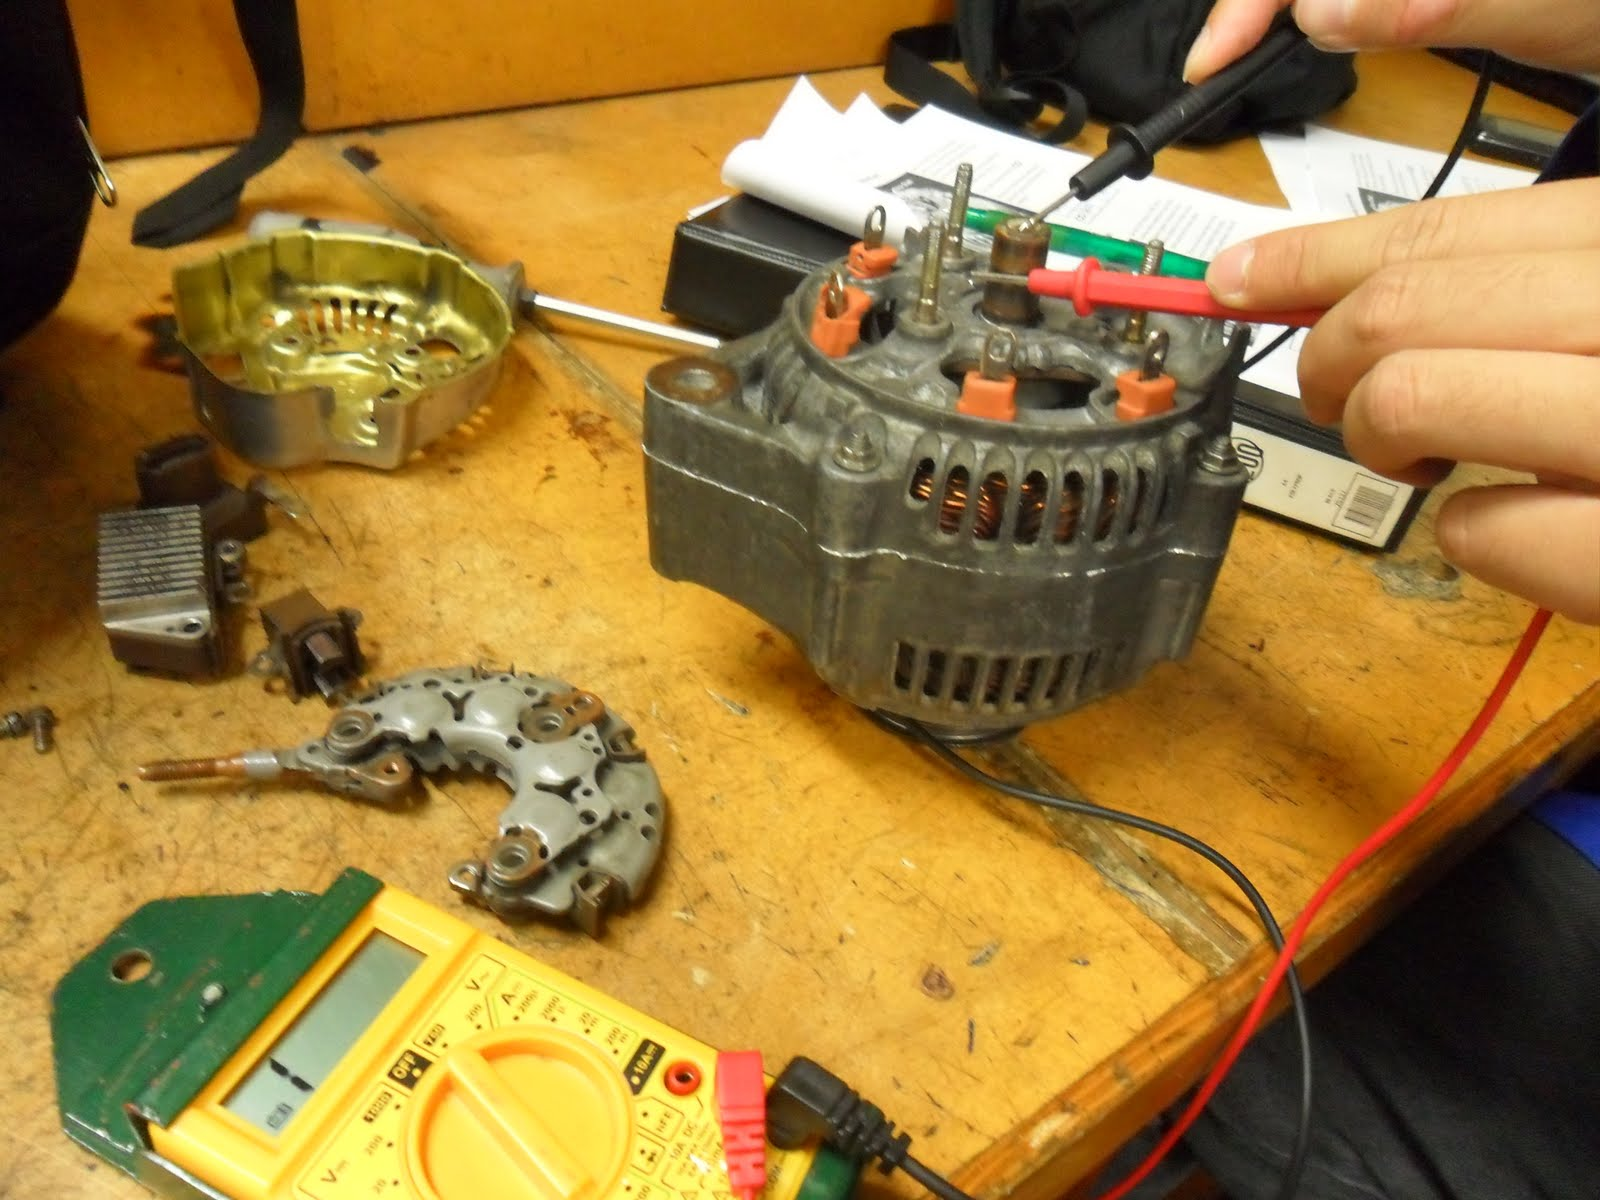 4841 Electrical And Electronics Alternator Off Car Testing Multimeter Wiring The Reading Achieved Was 32 Minus Internal Resistance Of Which Gives A Final Result 28 Ohms Results These Tests Are Within